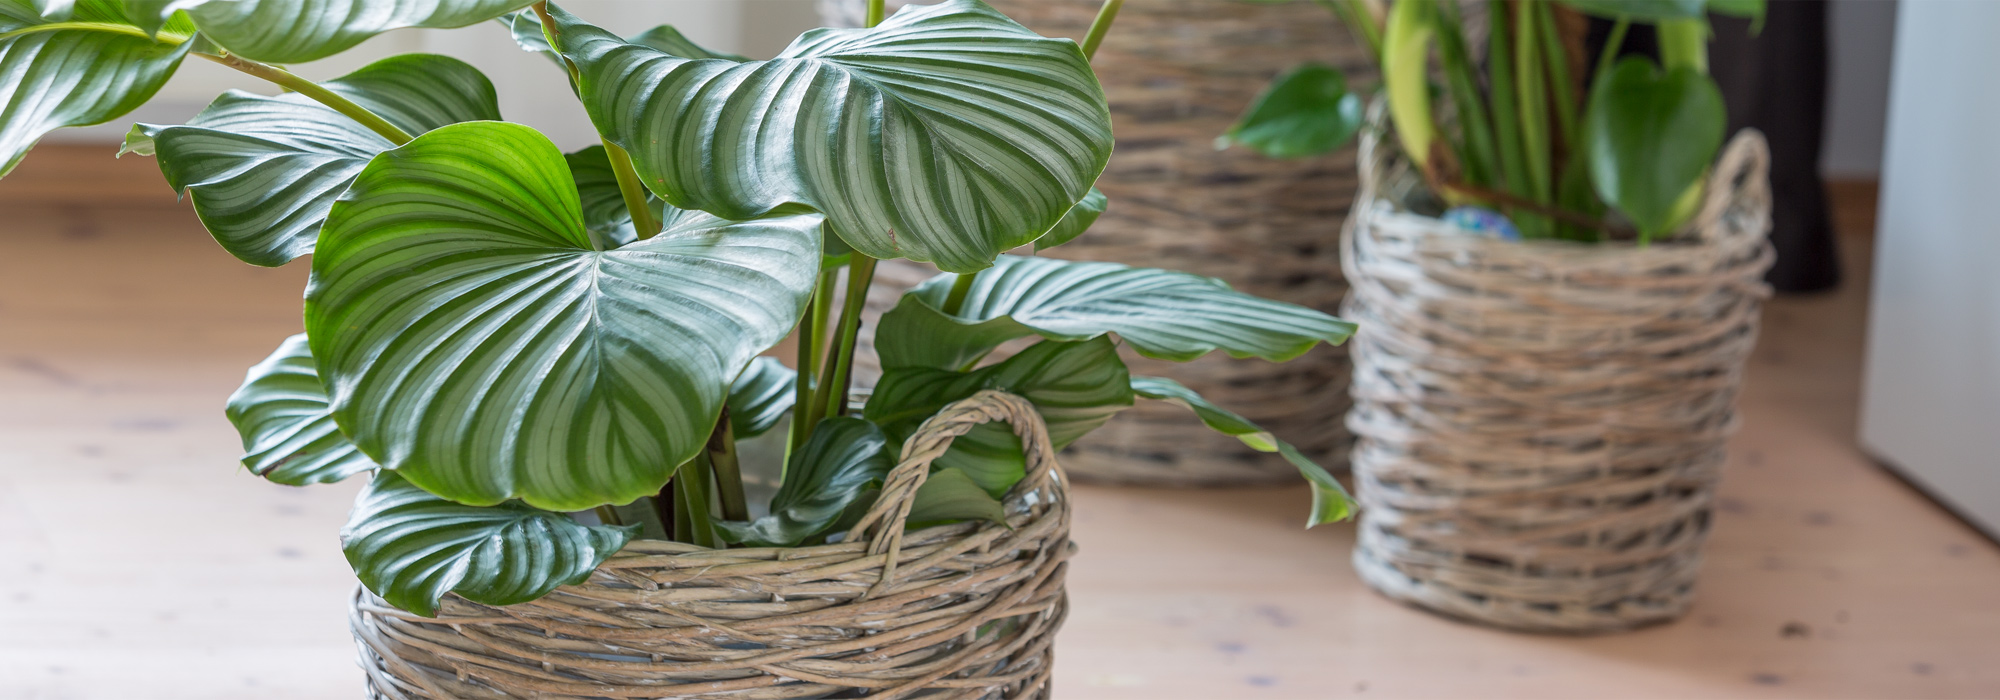 Care for your potted plants in winter